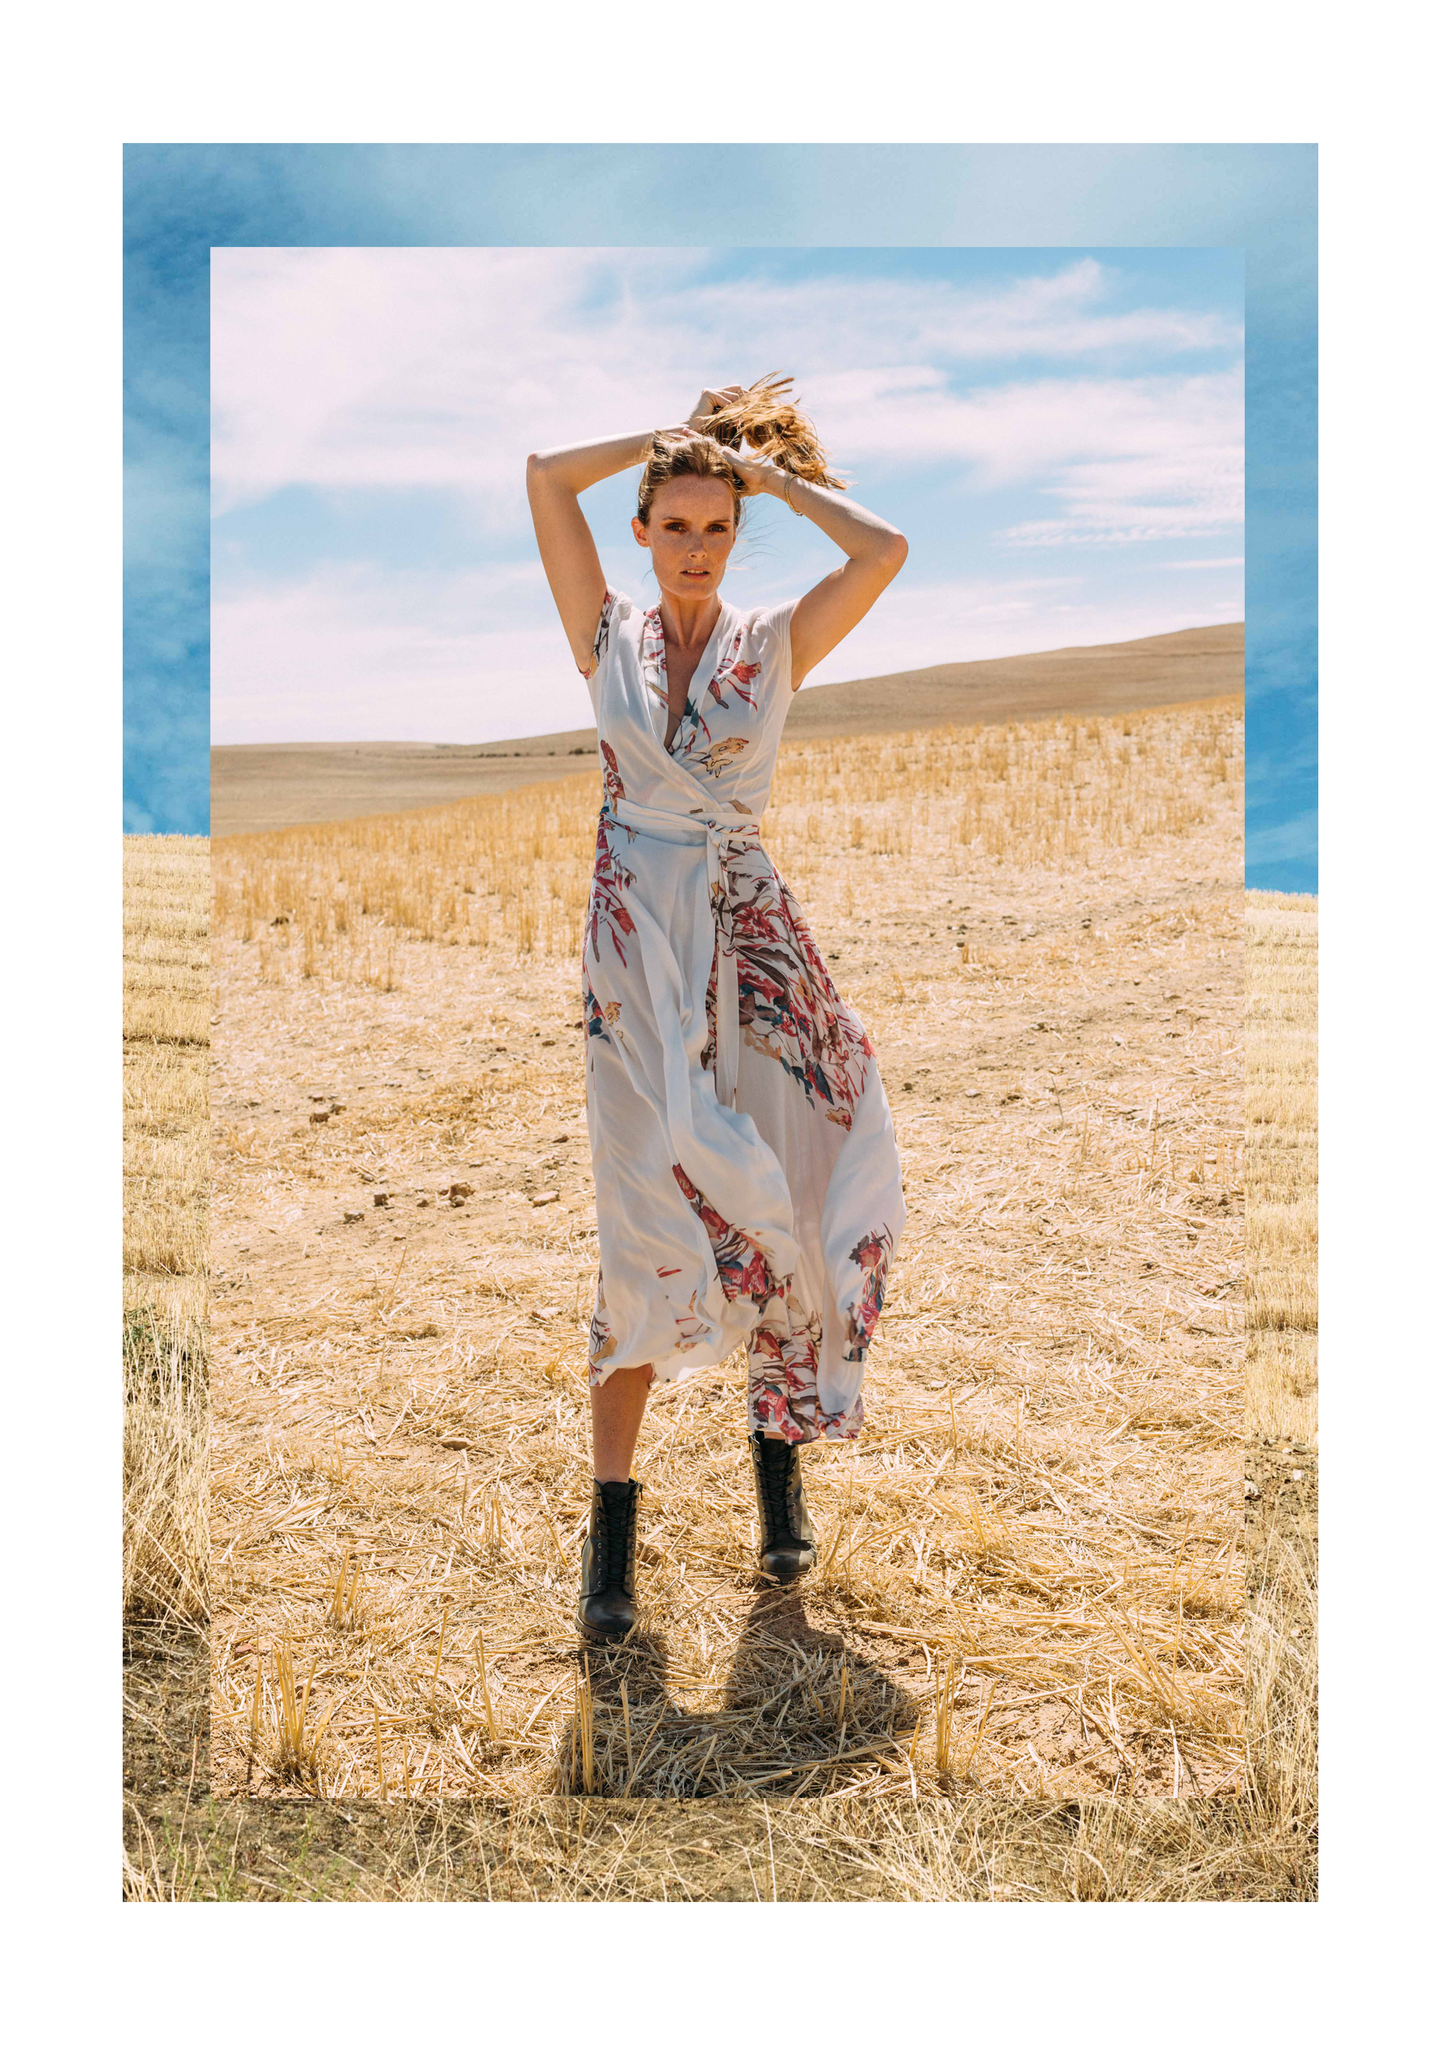 Philly Dress, MARETHCOLLEEN, Floral, Maxi Dress, Wrap Dress, Summer, South Africa, South African Design, Local, Cape Town, South African Designer, Landscape, Burgundy, Winter, Style, Cape Town Designer, Woodstock Designer